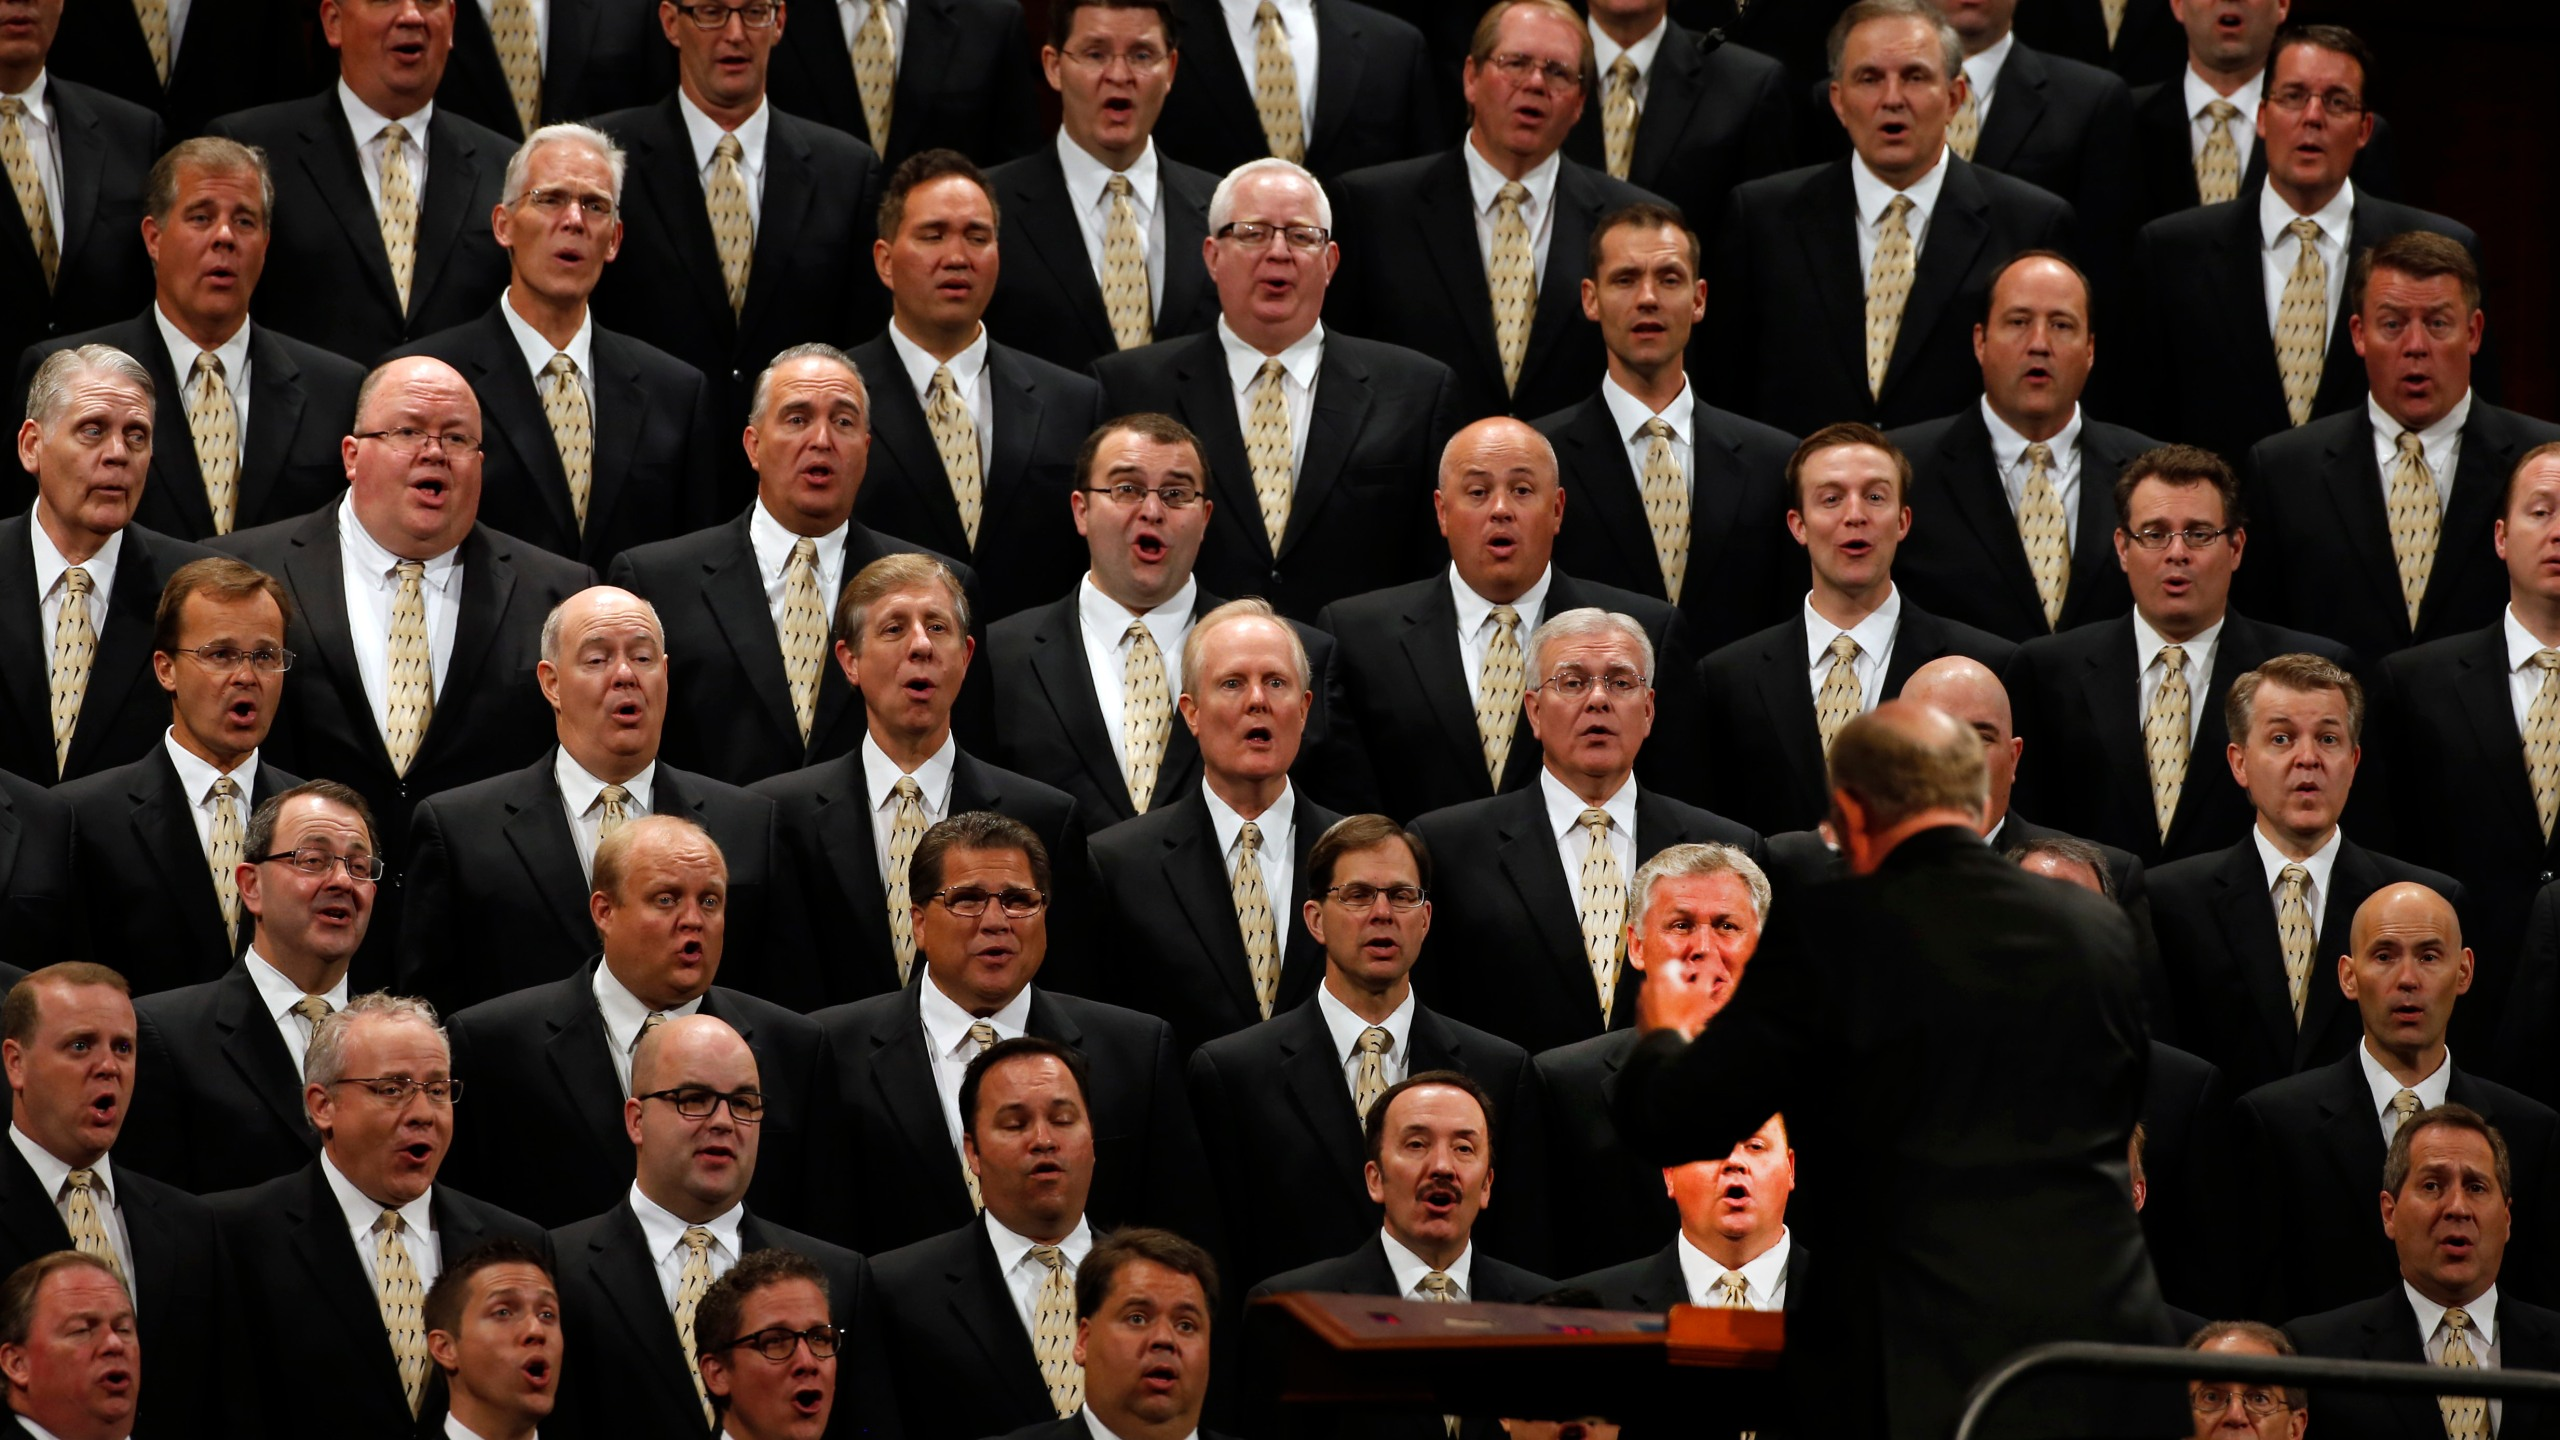 The Mormon Tabernacle Choir, of the Church of Jesus Christ of Latter-Day Saints Thomas sing at the start of the 185th Semiannual General Conference of the Mormon Church on Oct. 3, 2015 in Salt Lake City. (Credit: George Frey/Getty Images)